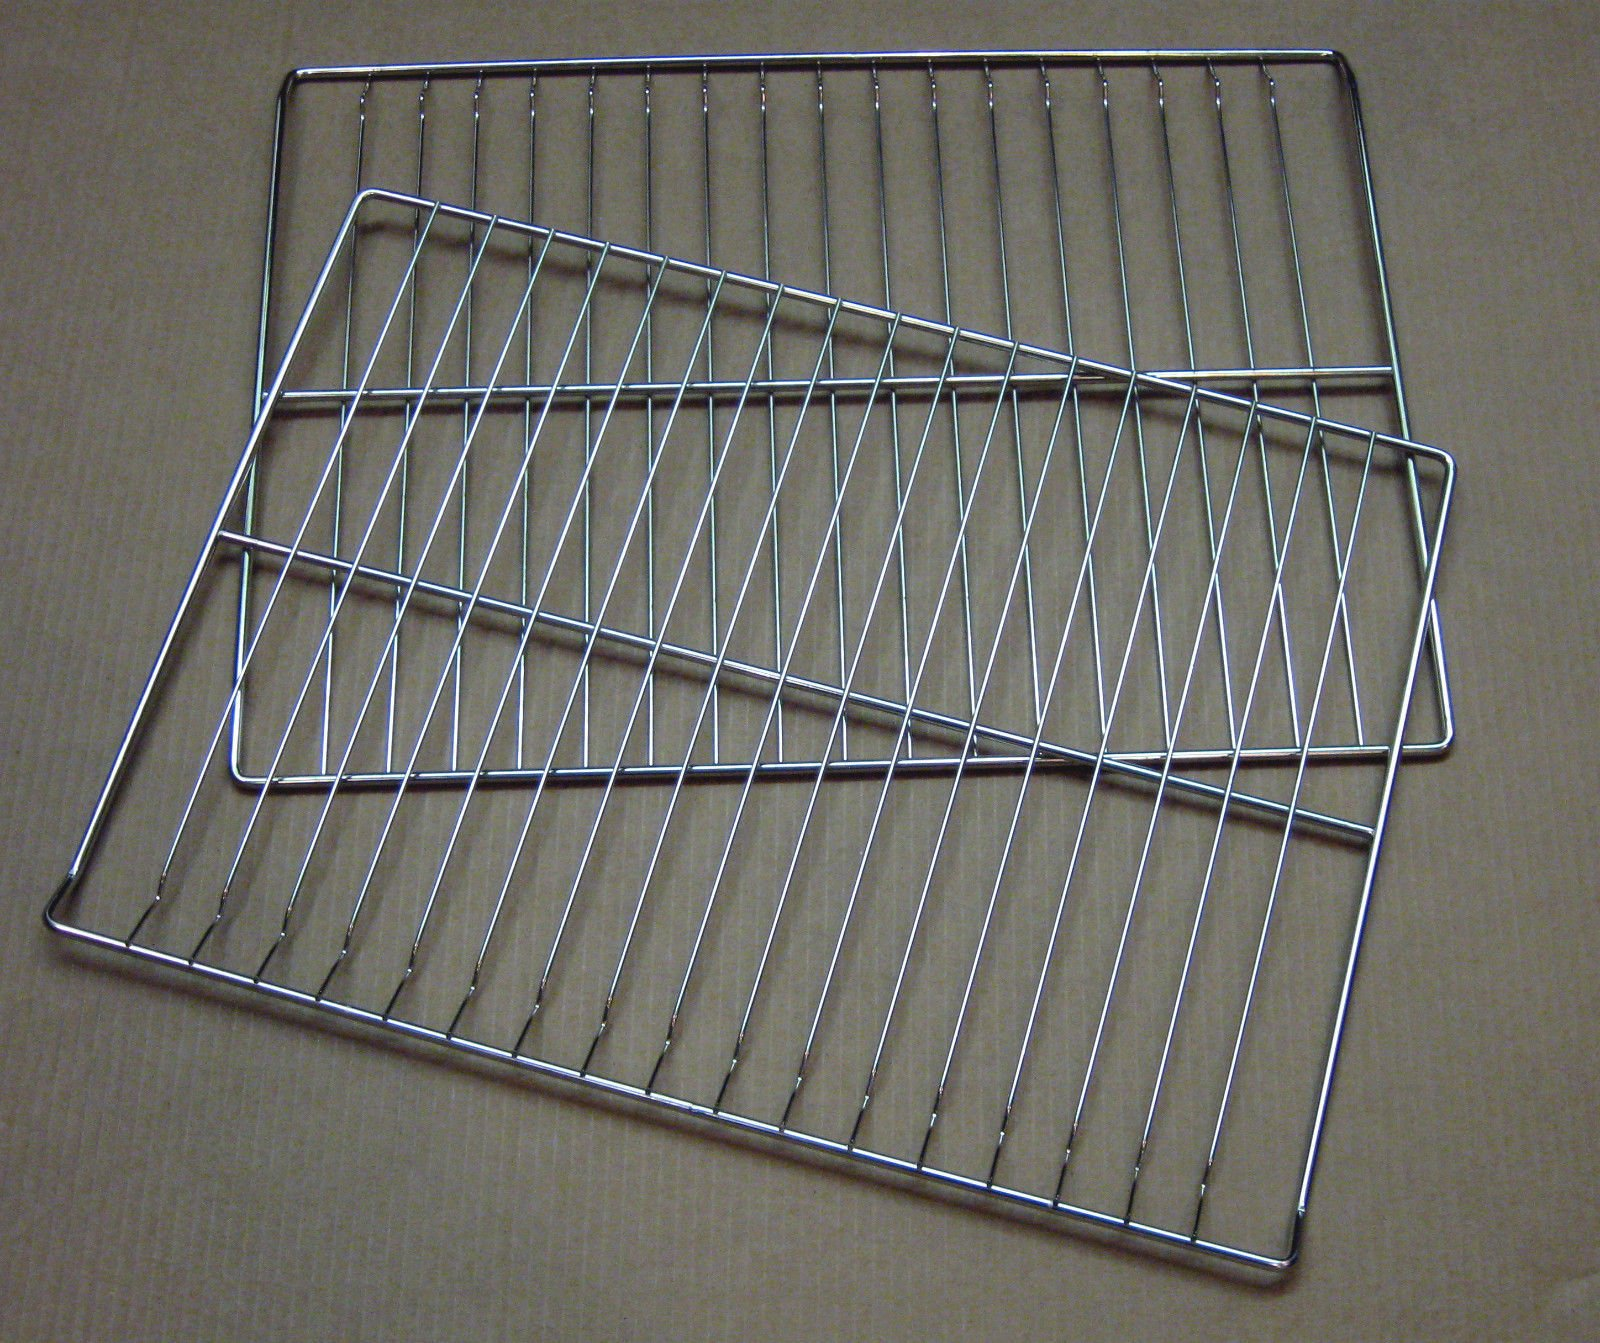 WB48K0001 WB48K4 WB48T10095-2 PACK for GE Range Oven Stove Wire Rack WB48K5019 AP5665850 PS249547